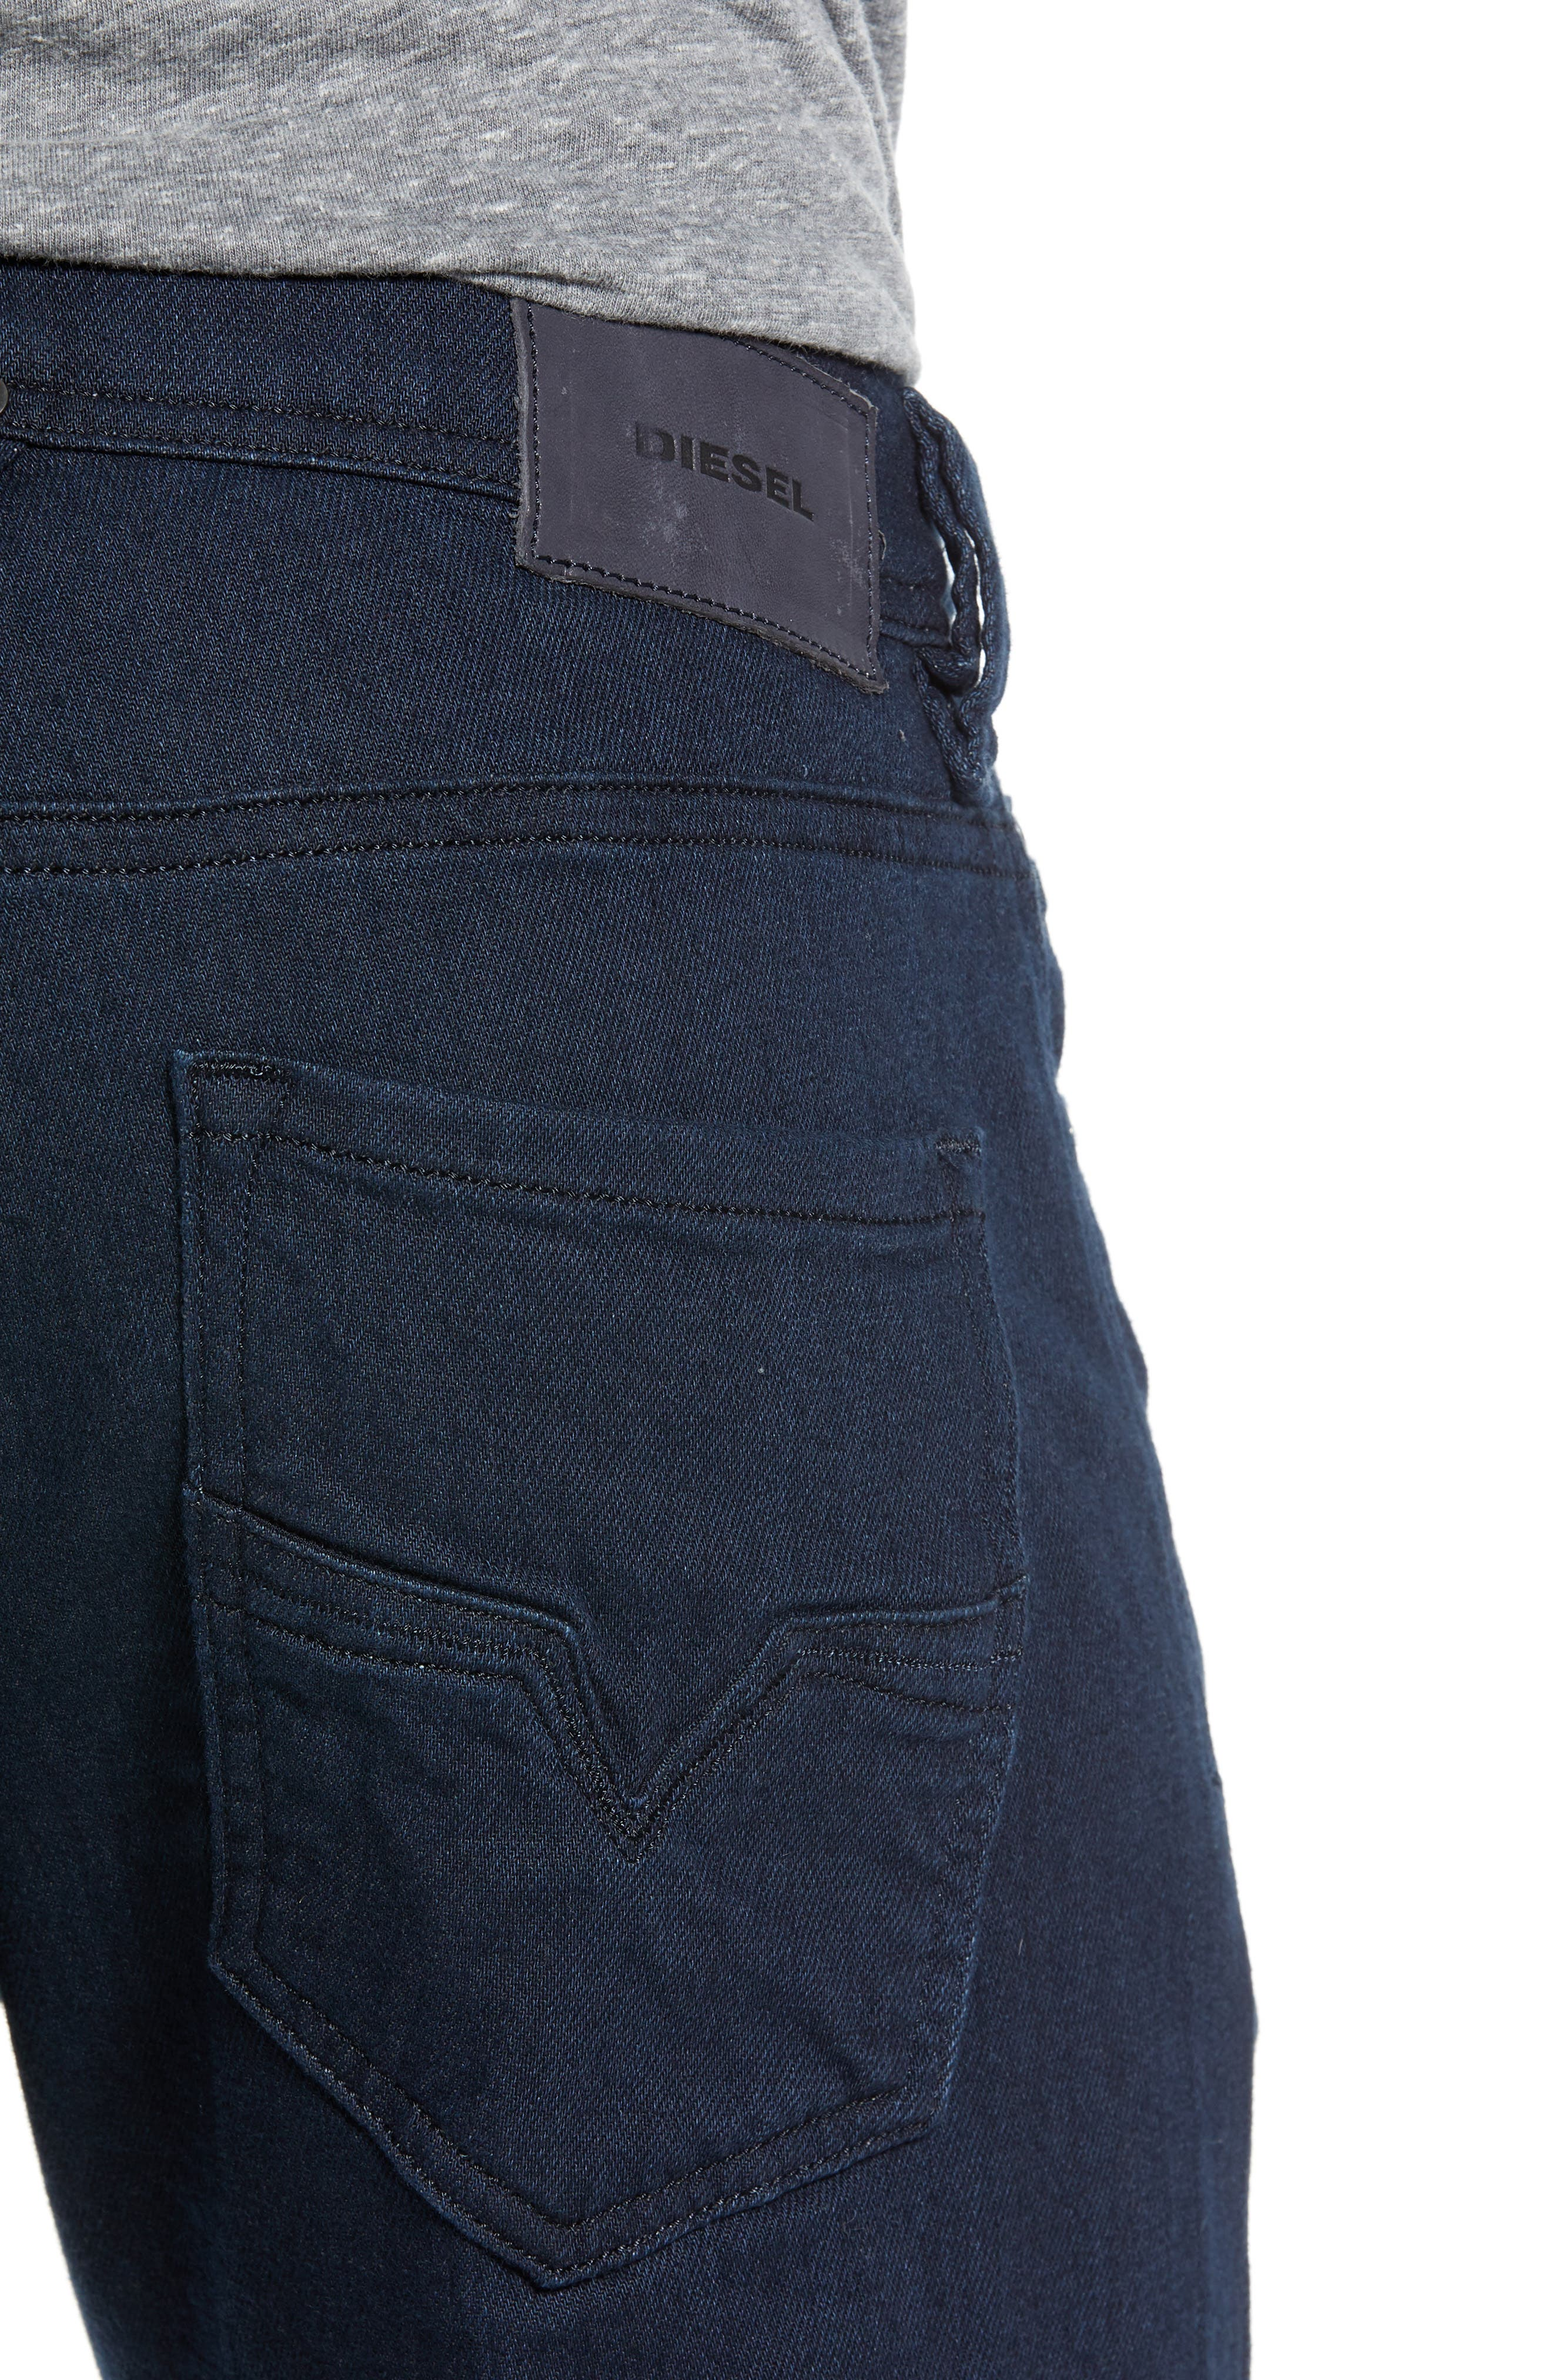 DIESEL<SUP>®</SUP>,                             Larkee Relaxed Fit Jeans,                             Alternate thumbnail 4, color,                             400